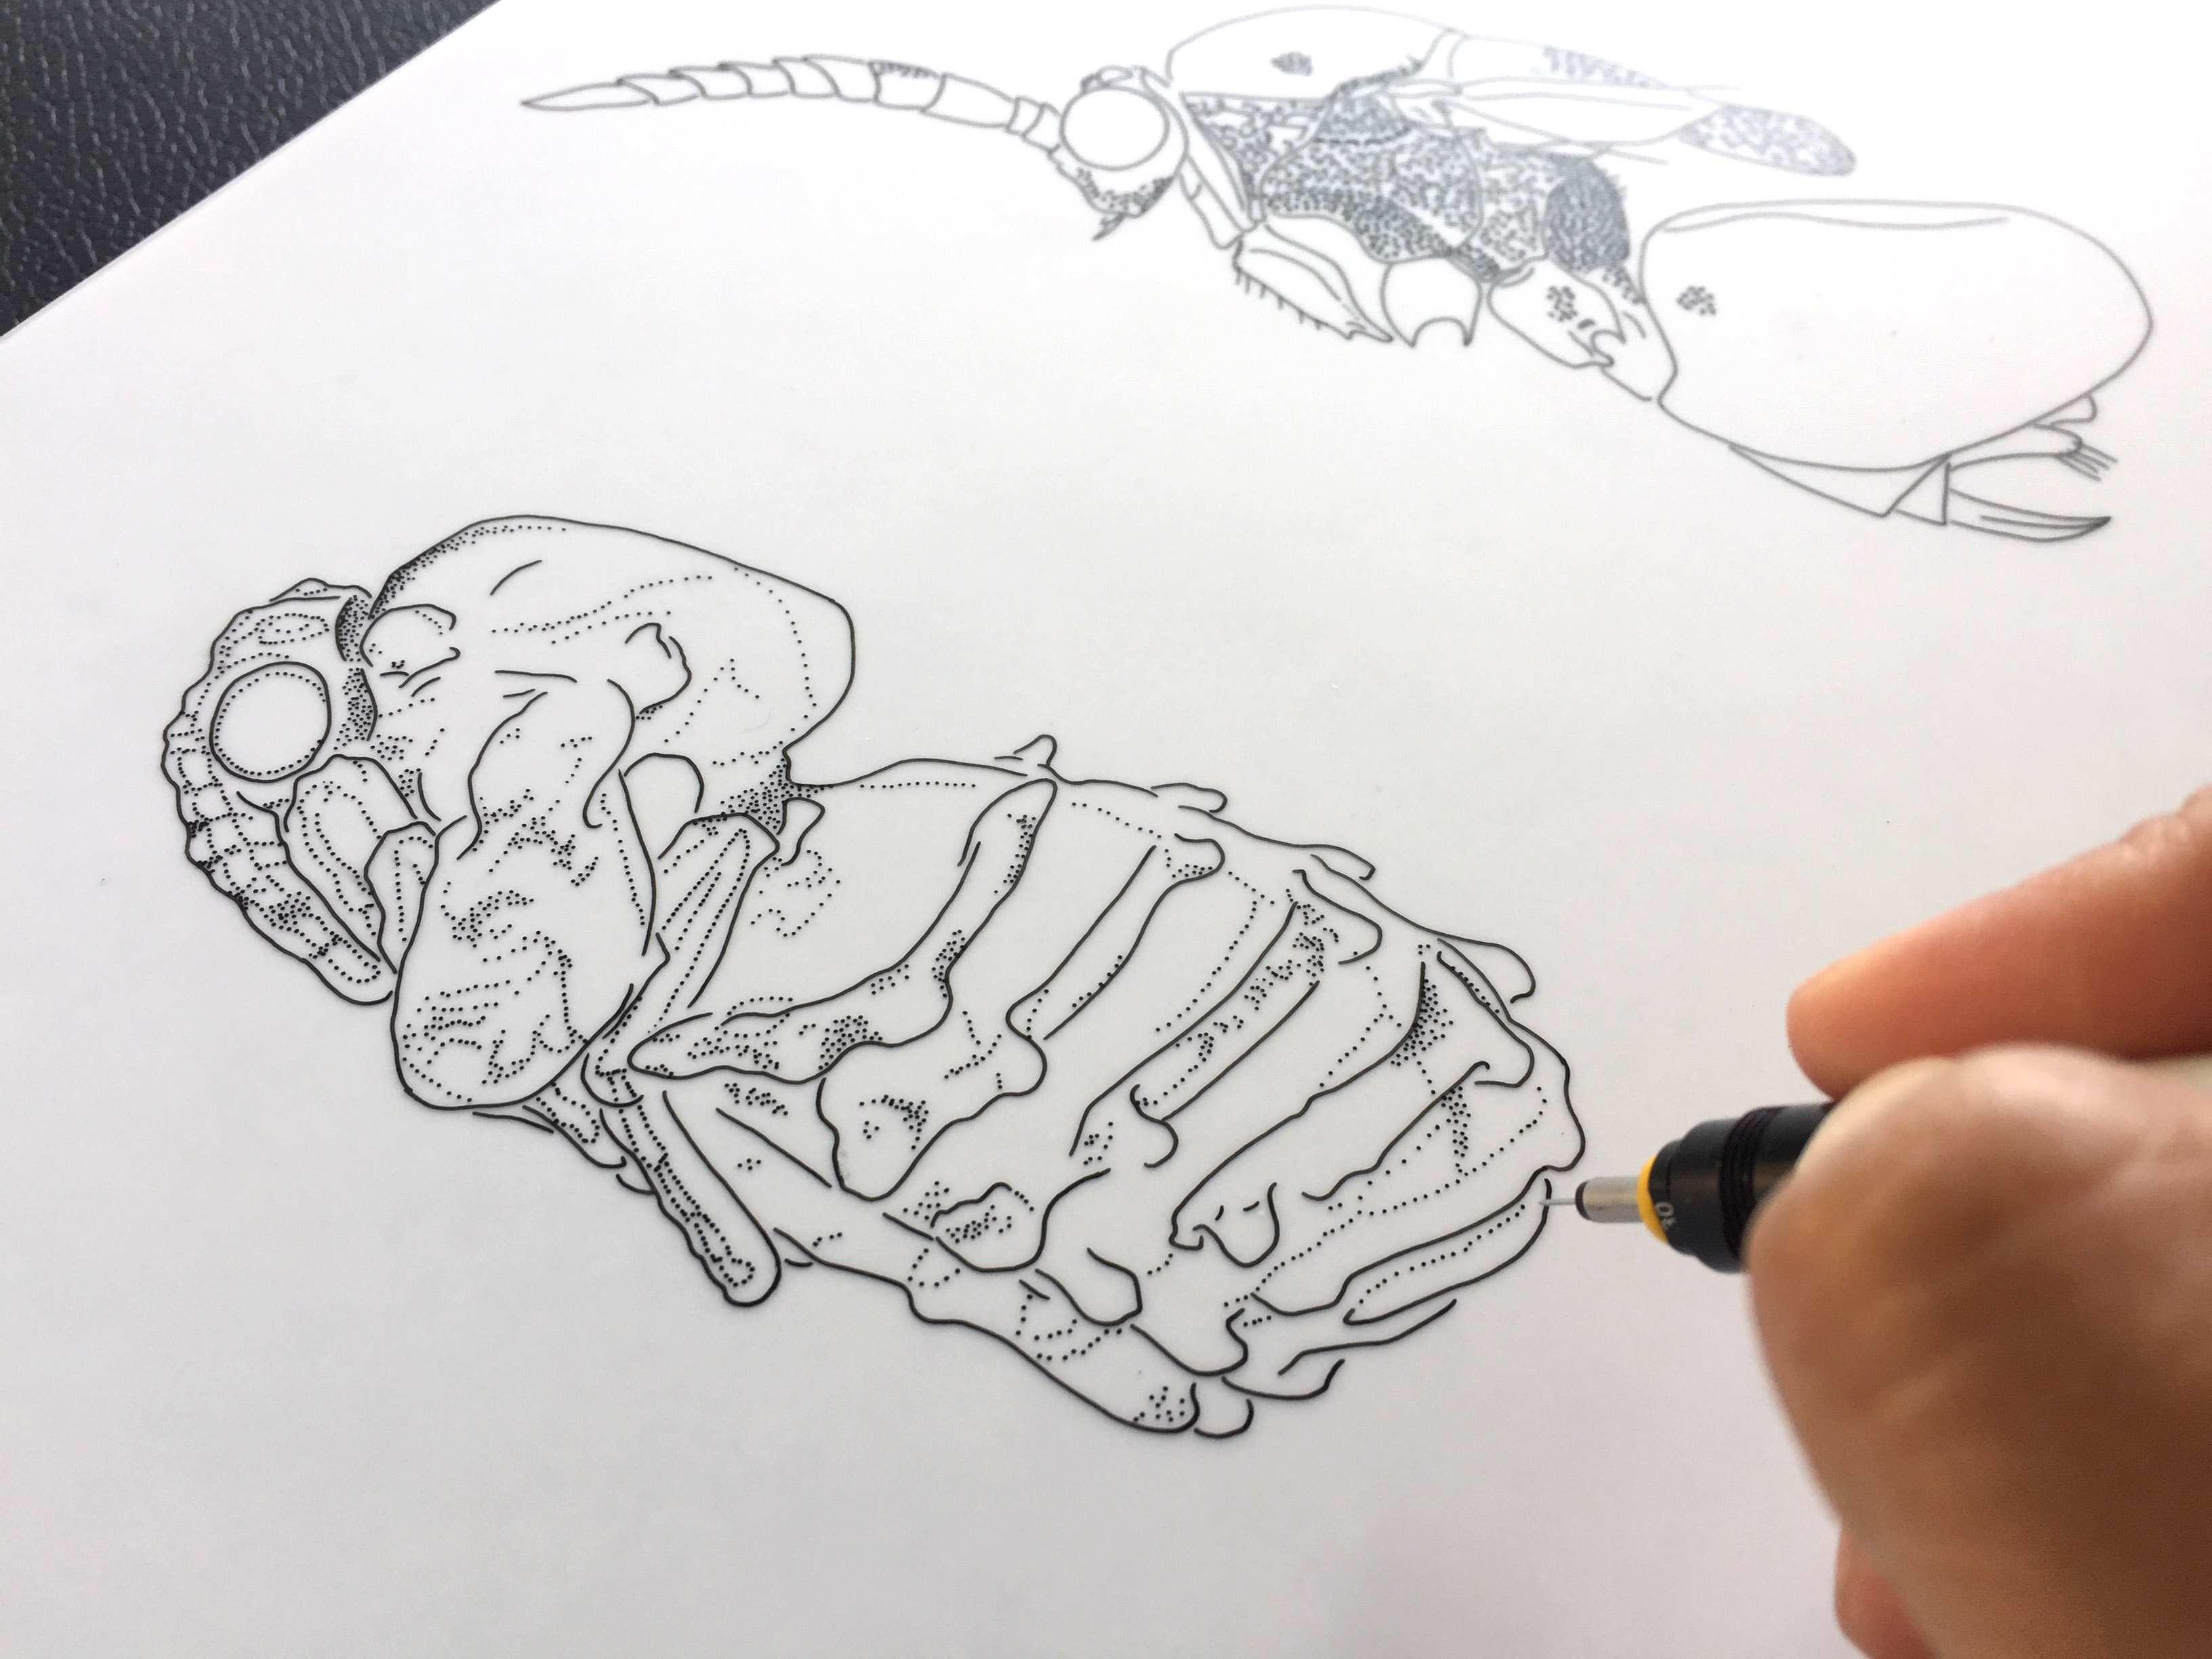 Pen and Ink Scientific Illustration